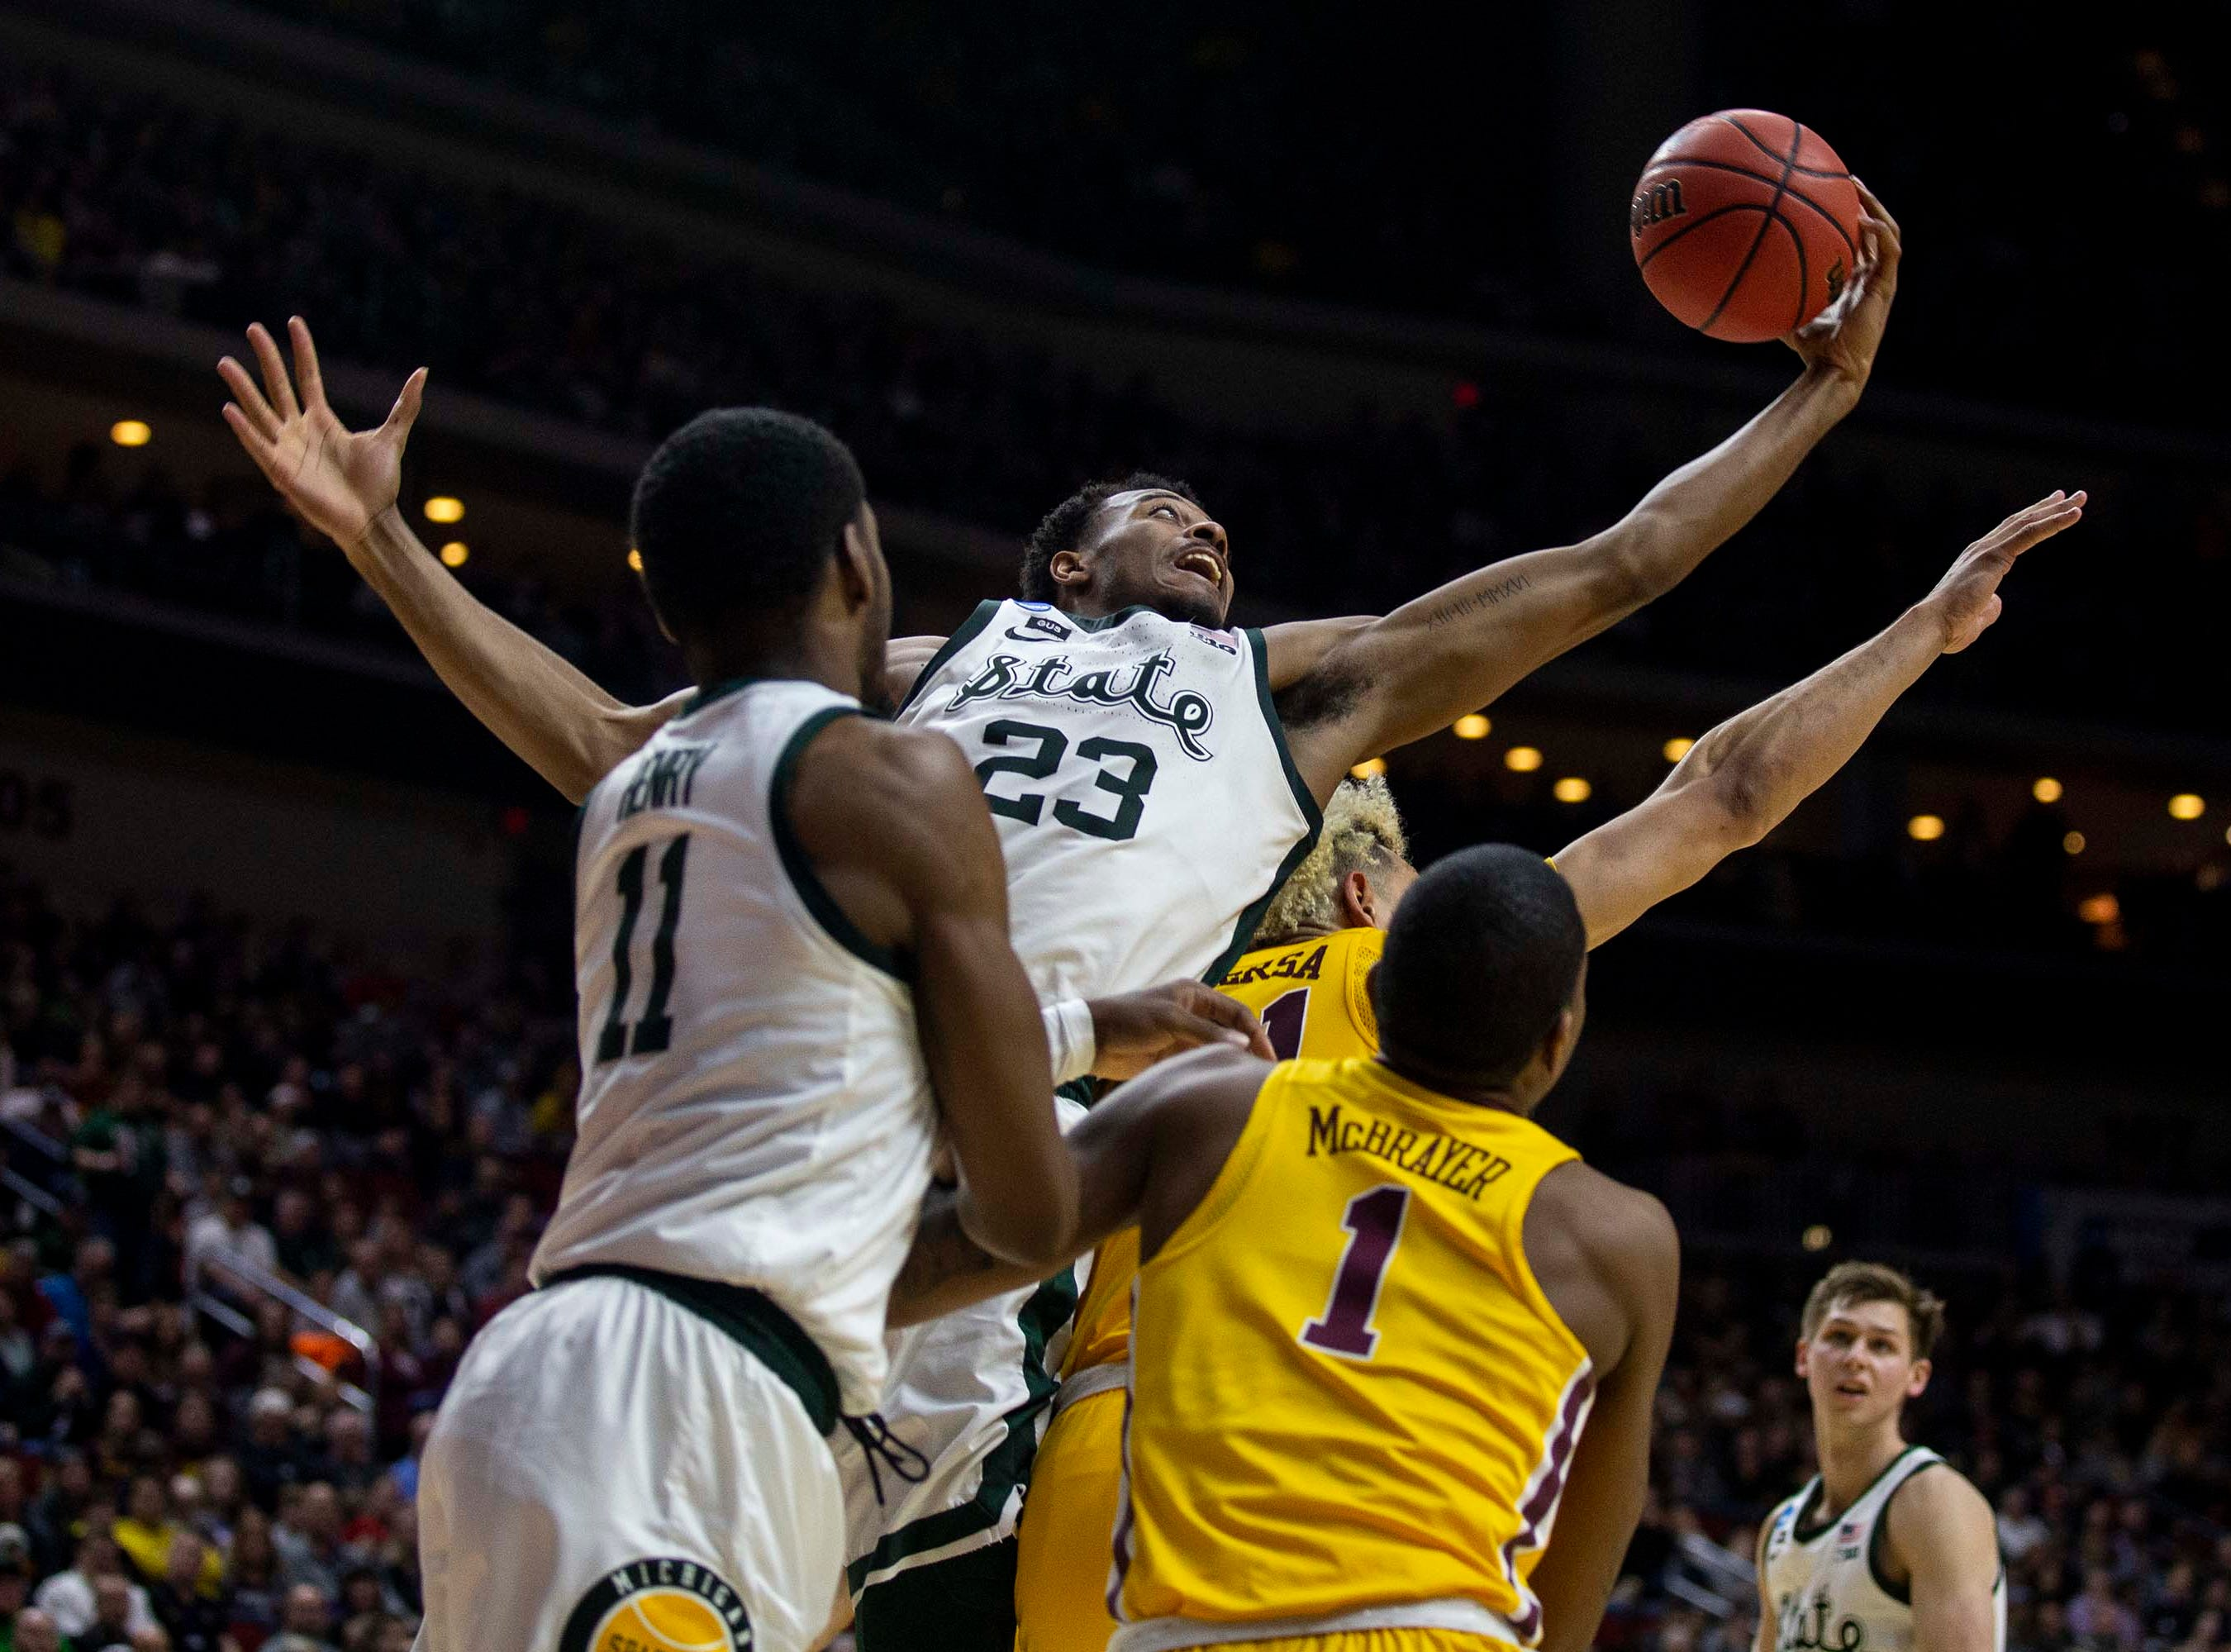 Michigan State's Xavier Tillman tries to keep hold of the ball during the NCAA Tournament second-round match-up between Minnesota and Michigan State on Saturday, March 23, 2019, in Wells Fargo Arena in Des Moines, Iowa.